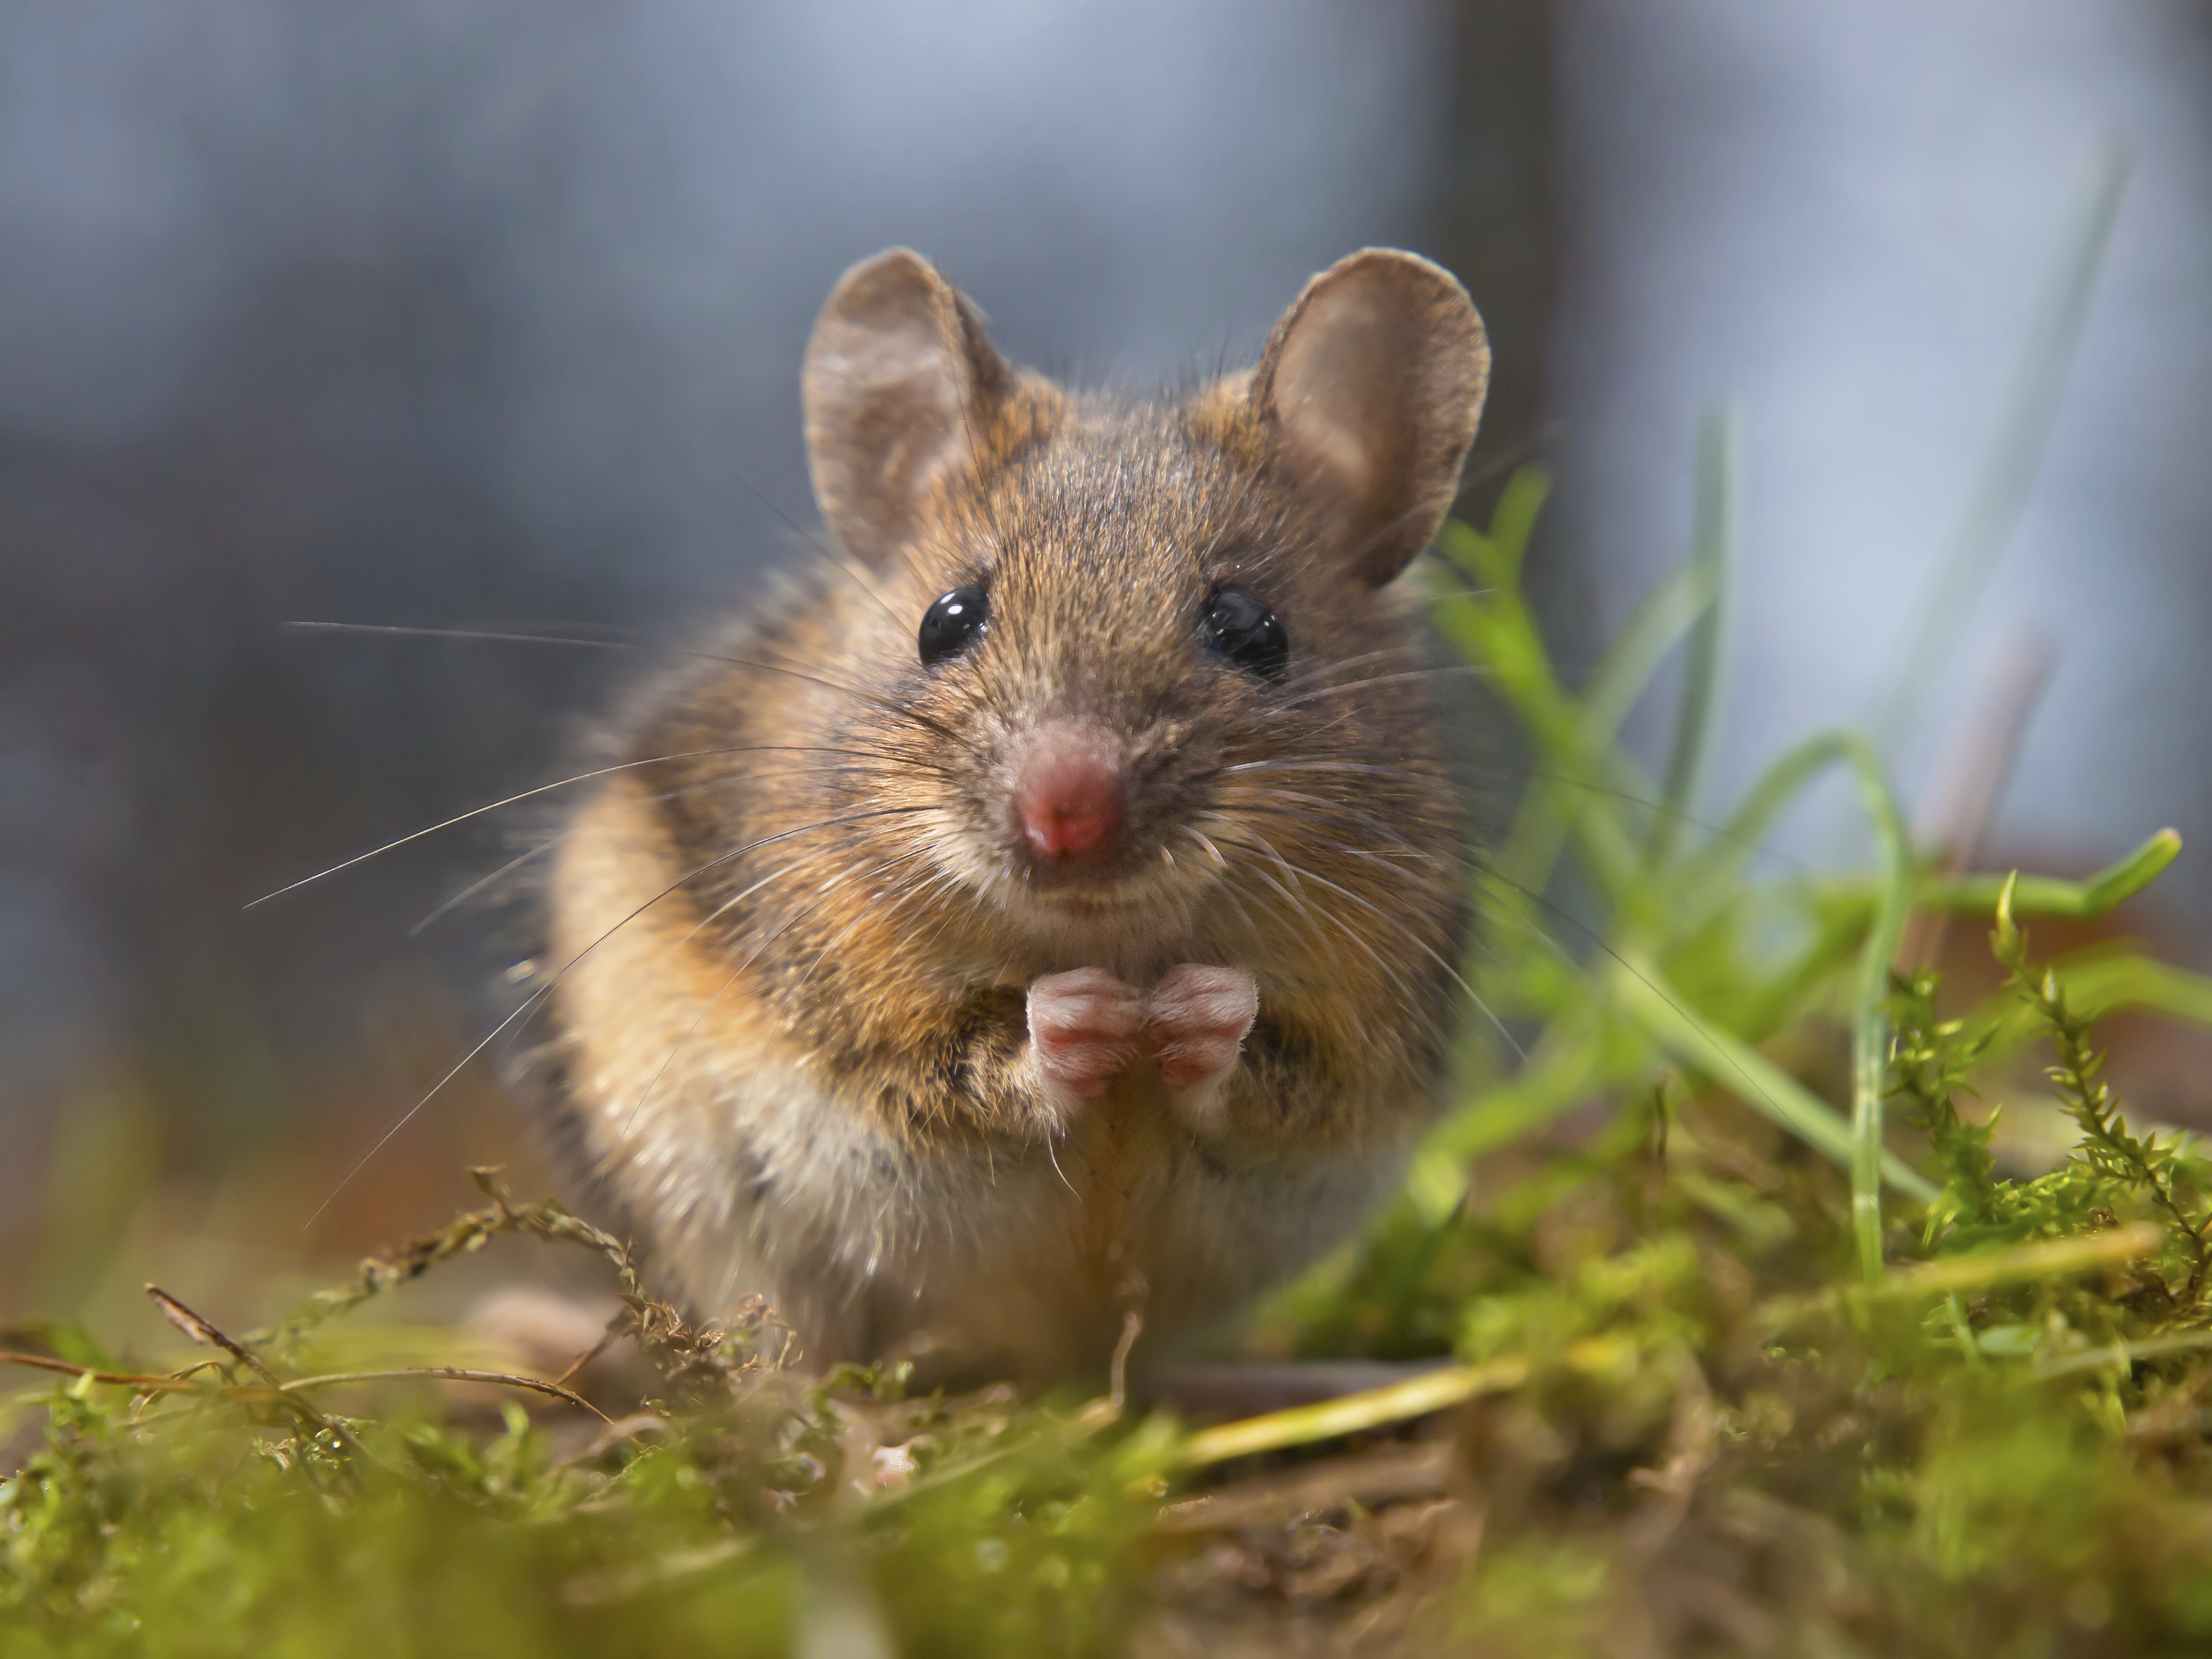 mouse_in_nature.jpg